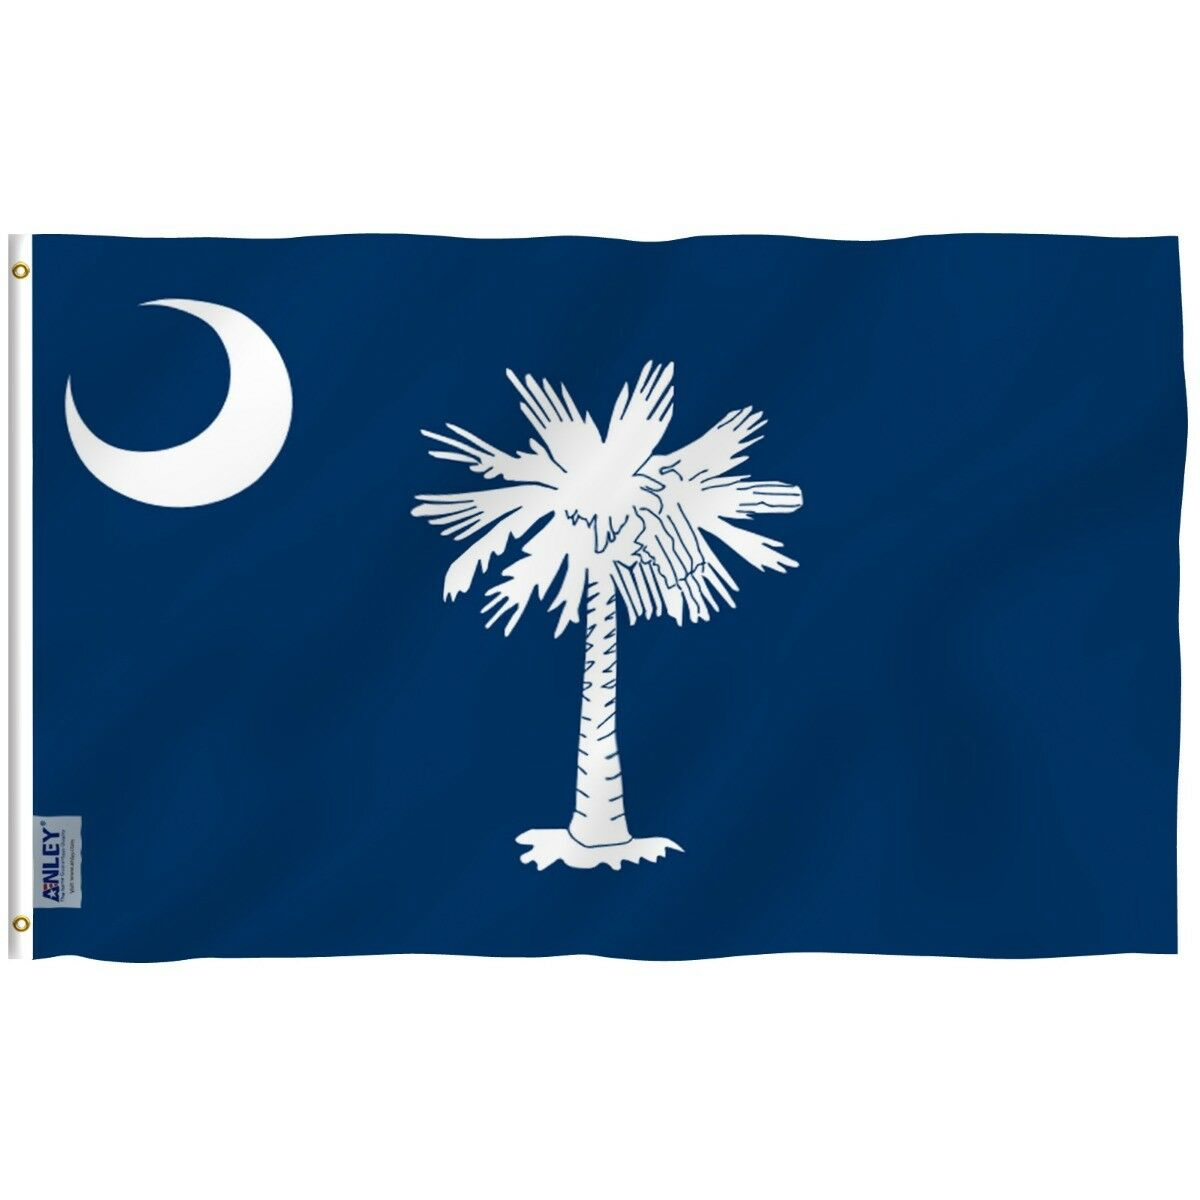 Anley 3x5 Foot South Carolina State Polyester Flag South Car